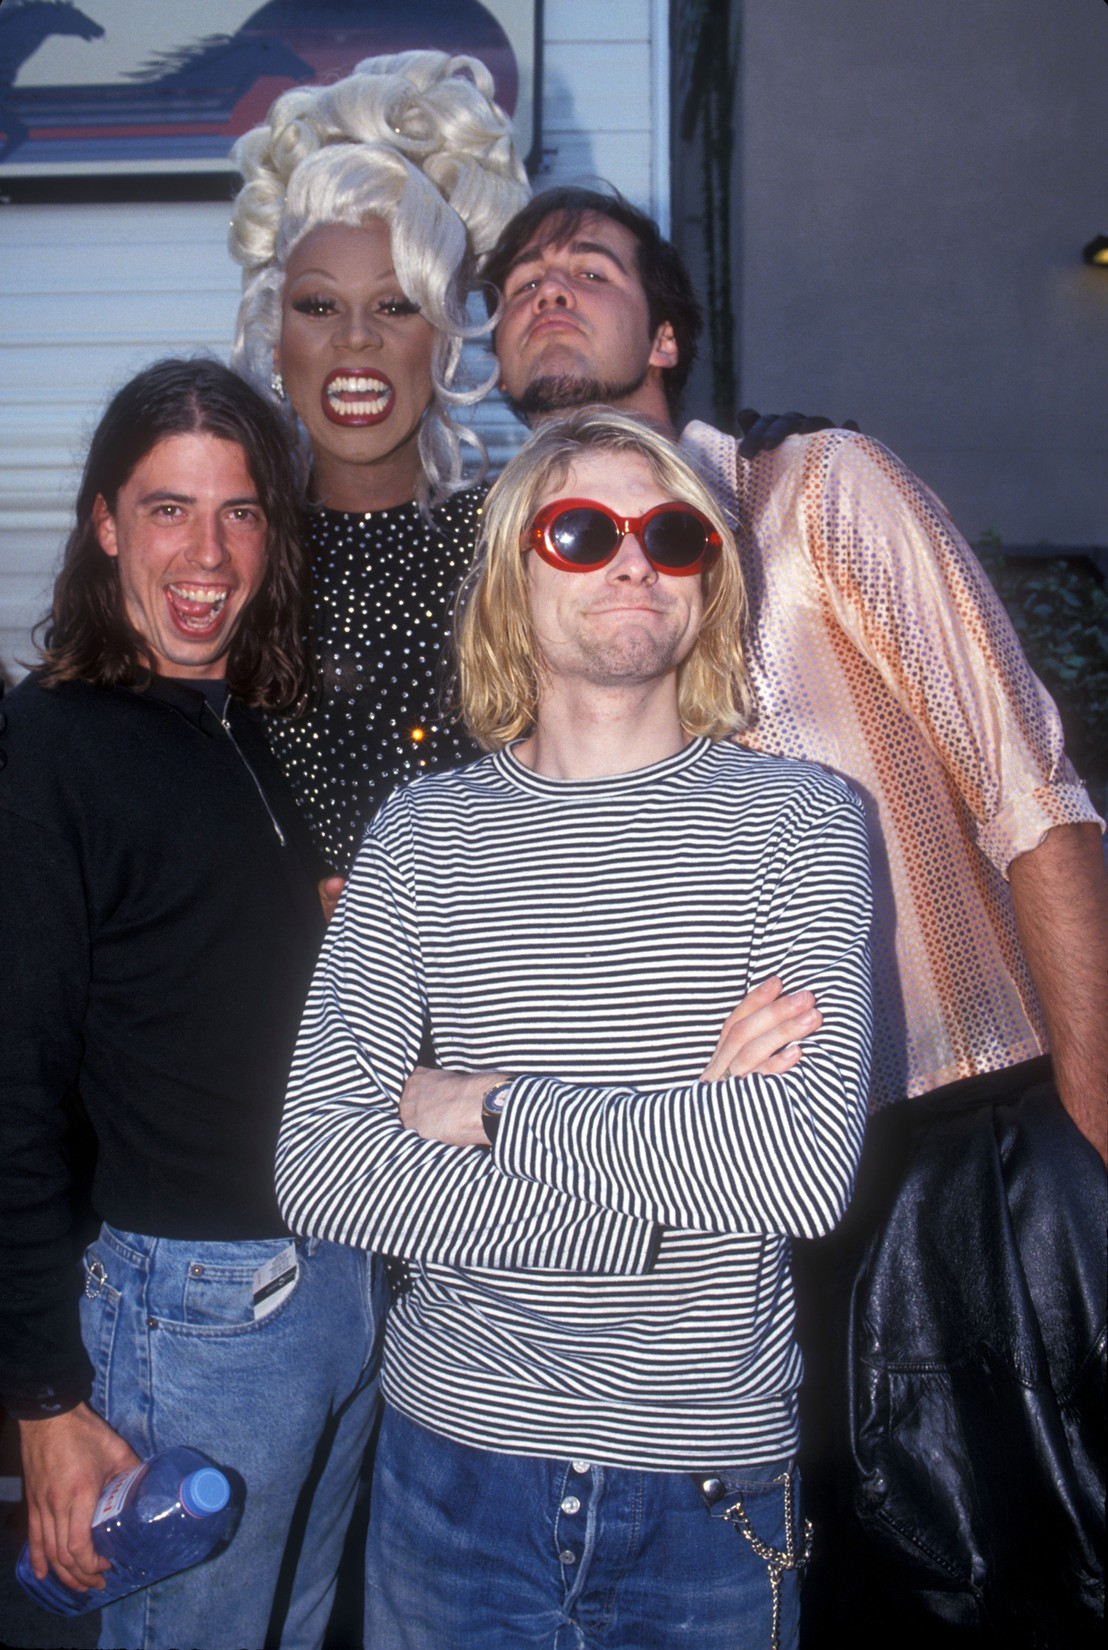 RuPaul (2nd from left) with Dave Grohl, Kurt Cobain and Krist Novoselic of Nirvana at the 10th Annual MTV Video Music Awards on Sept. 2, 1993 in Los Angeles.